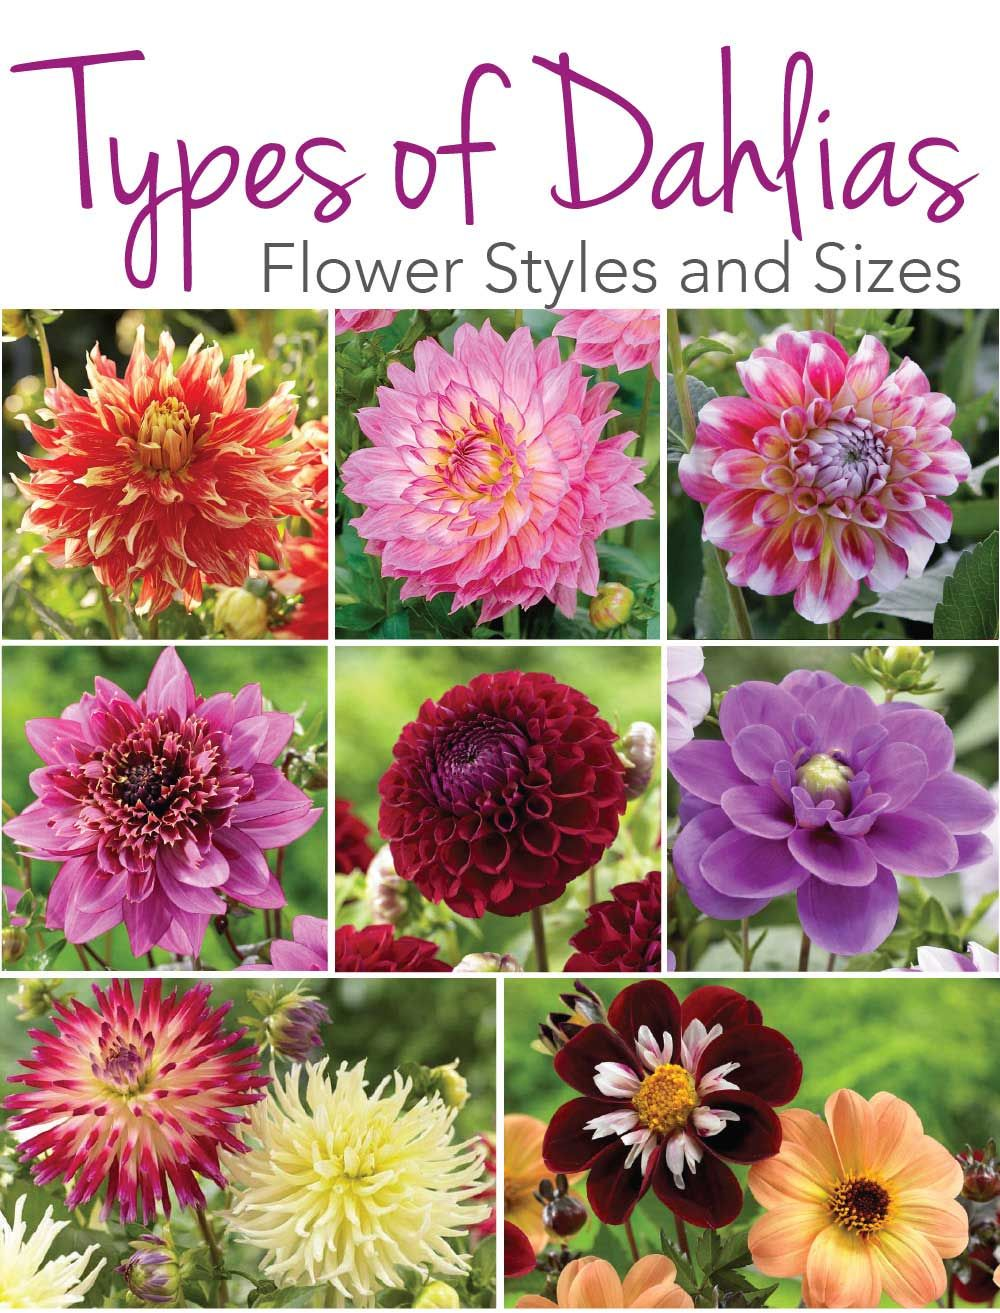 Know Your Dahlias  Flower Styles and Sizes   The Longfield Gardens     Know your Dahlia Styles   Sizes in this wonderfully written blog post full  of gorgeous Dahlia pictures